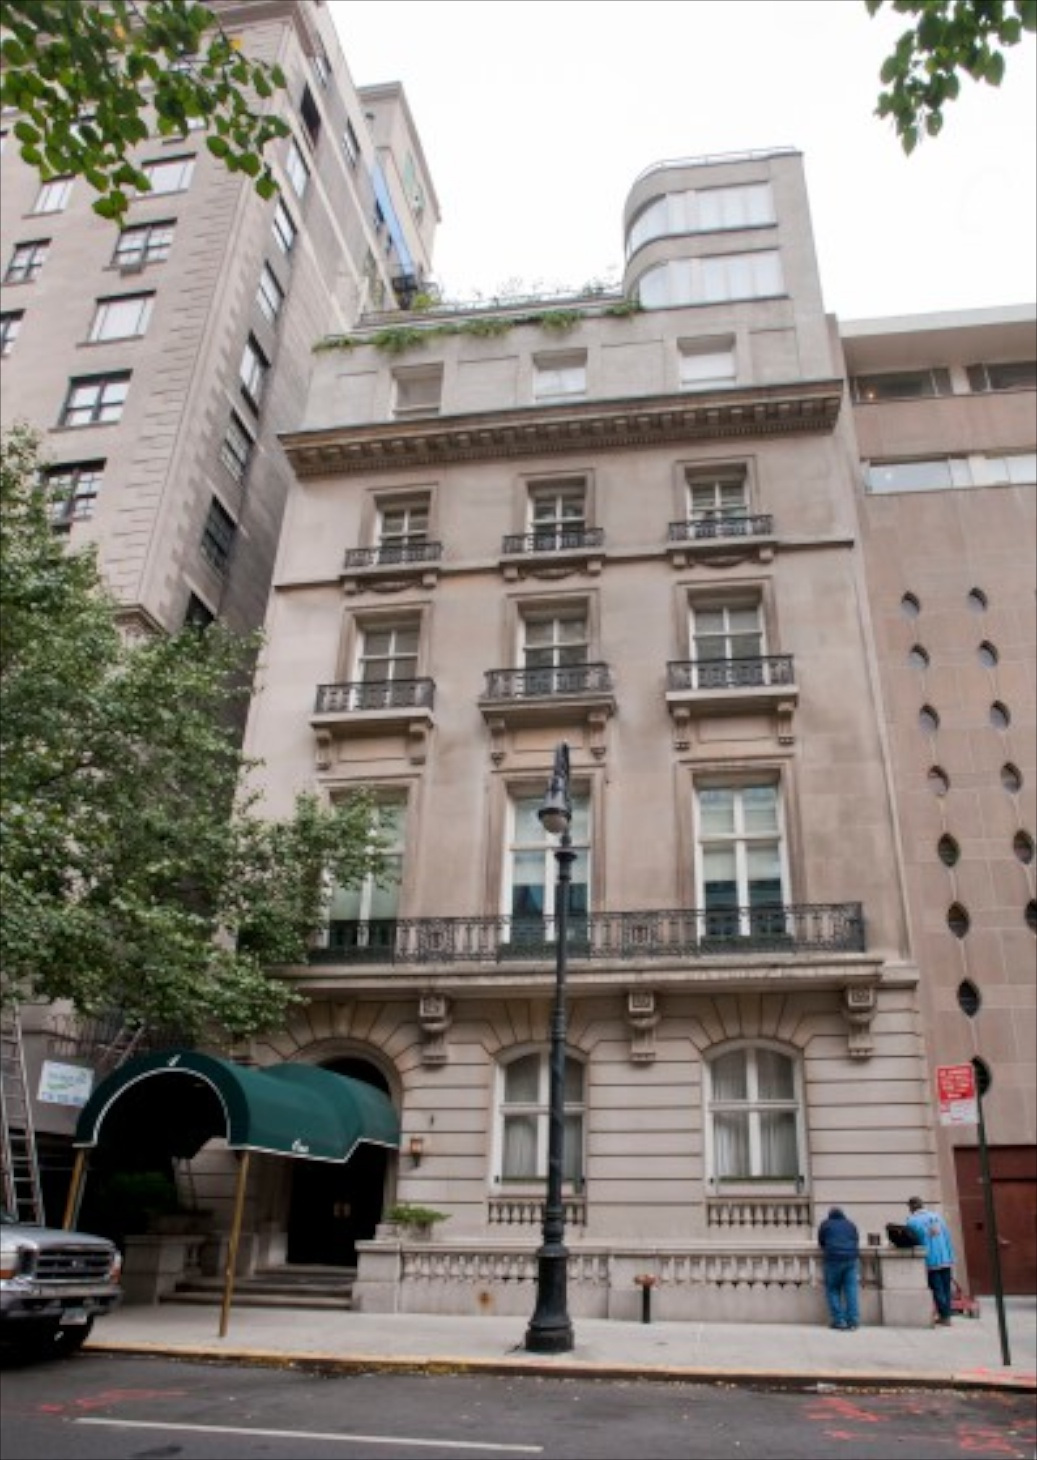 Joan Rivers Apartment Building there is a lesson here……